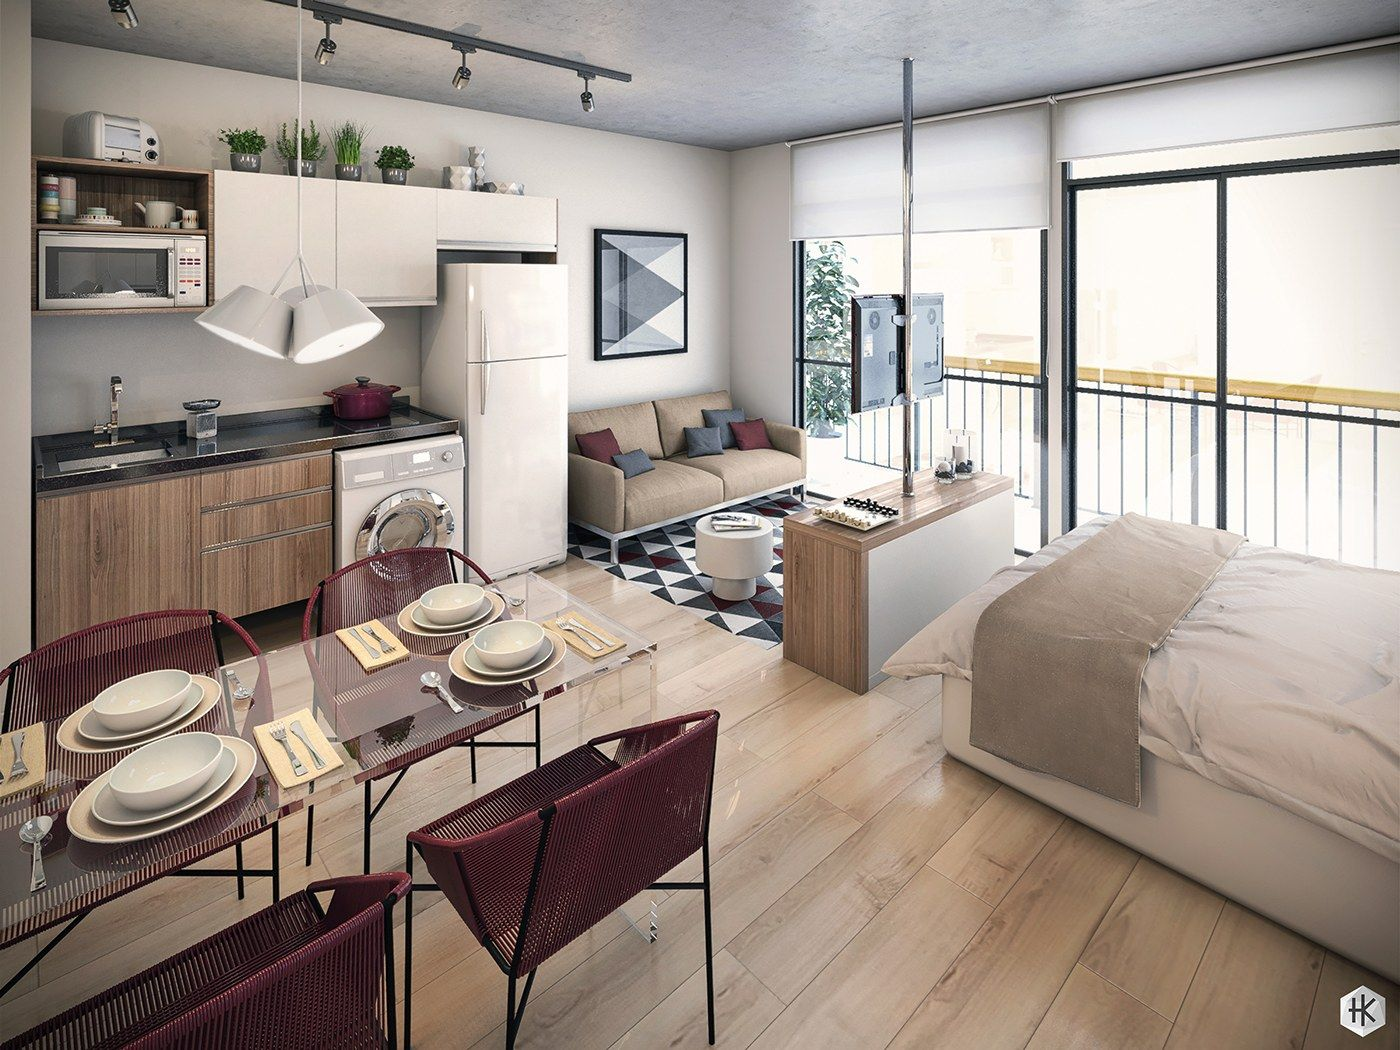 Student apartment living room - When A House Or Apartment Measures Just A Couple Hundred Feet Adding Room Dividers Or Even Walls Can Make The Space Feel Smaller And Definitely More